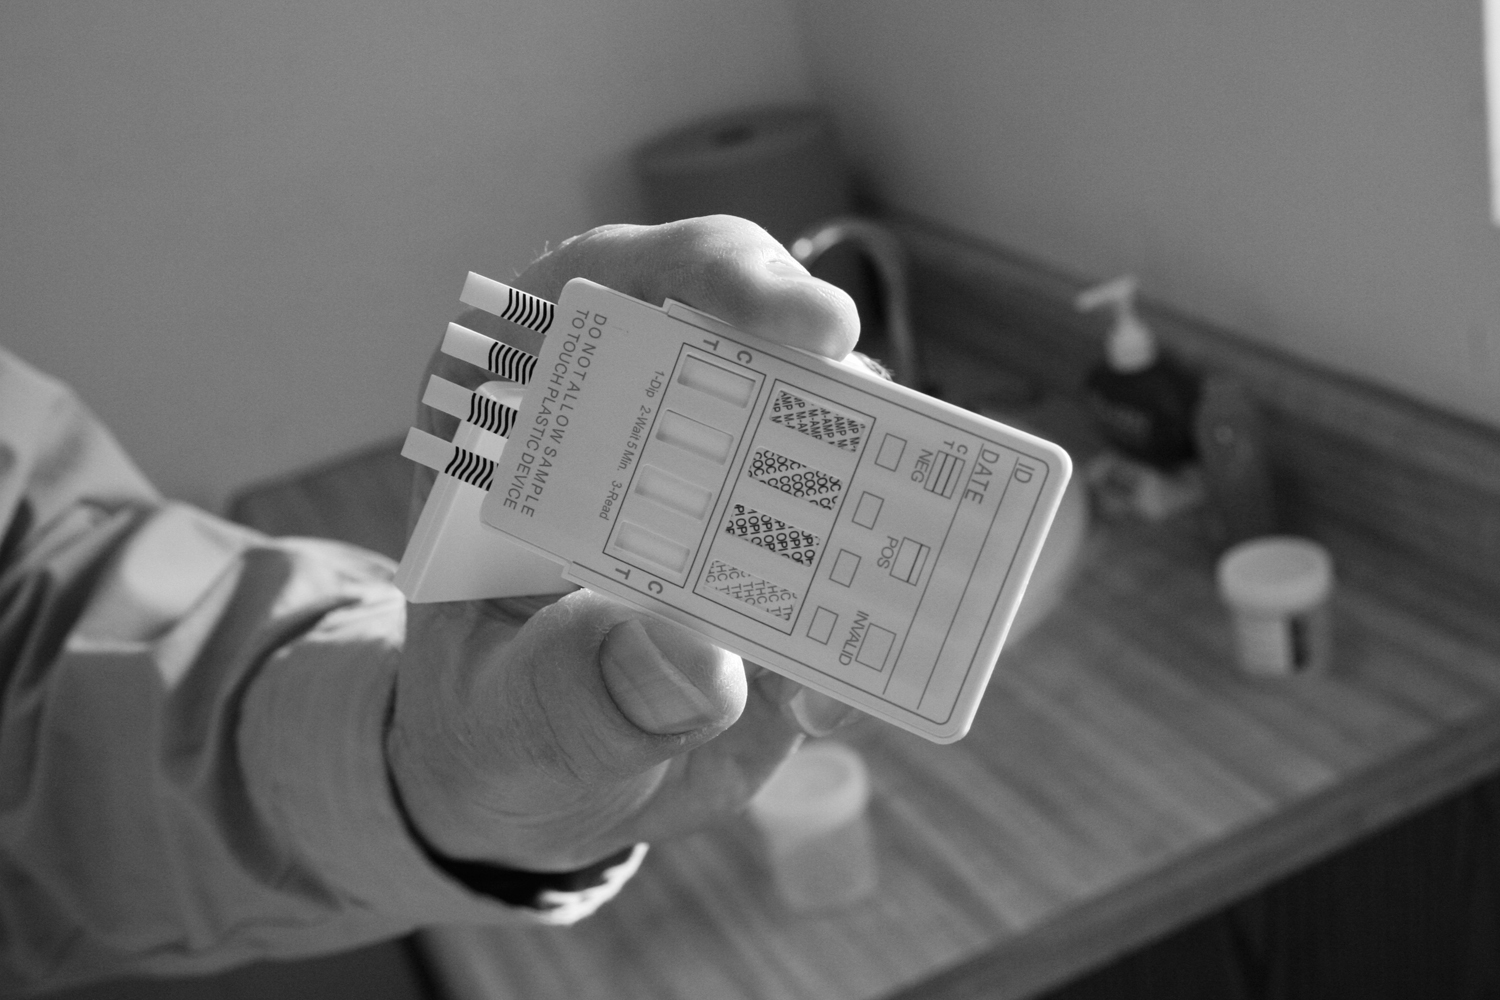 Drug testing in the workplace: a warning for employers